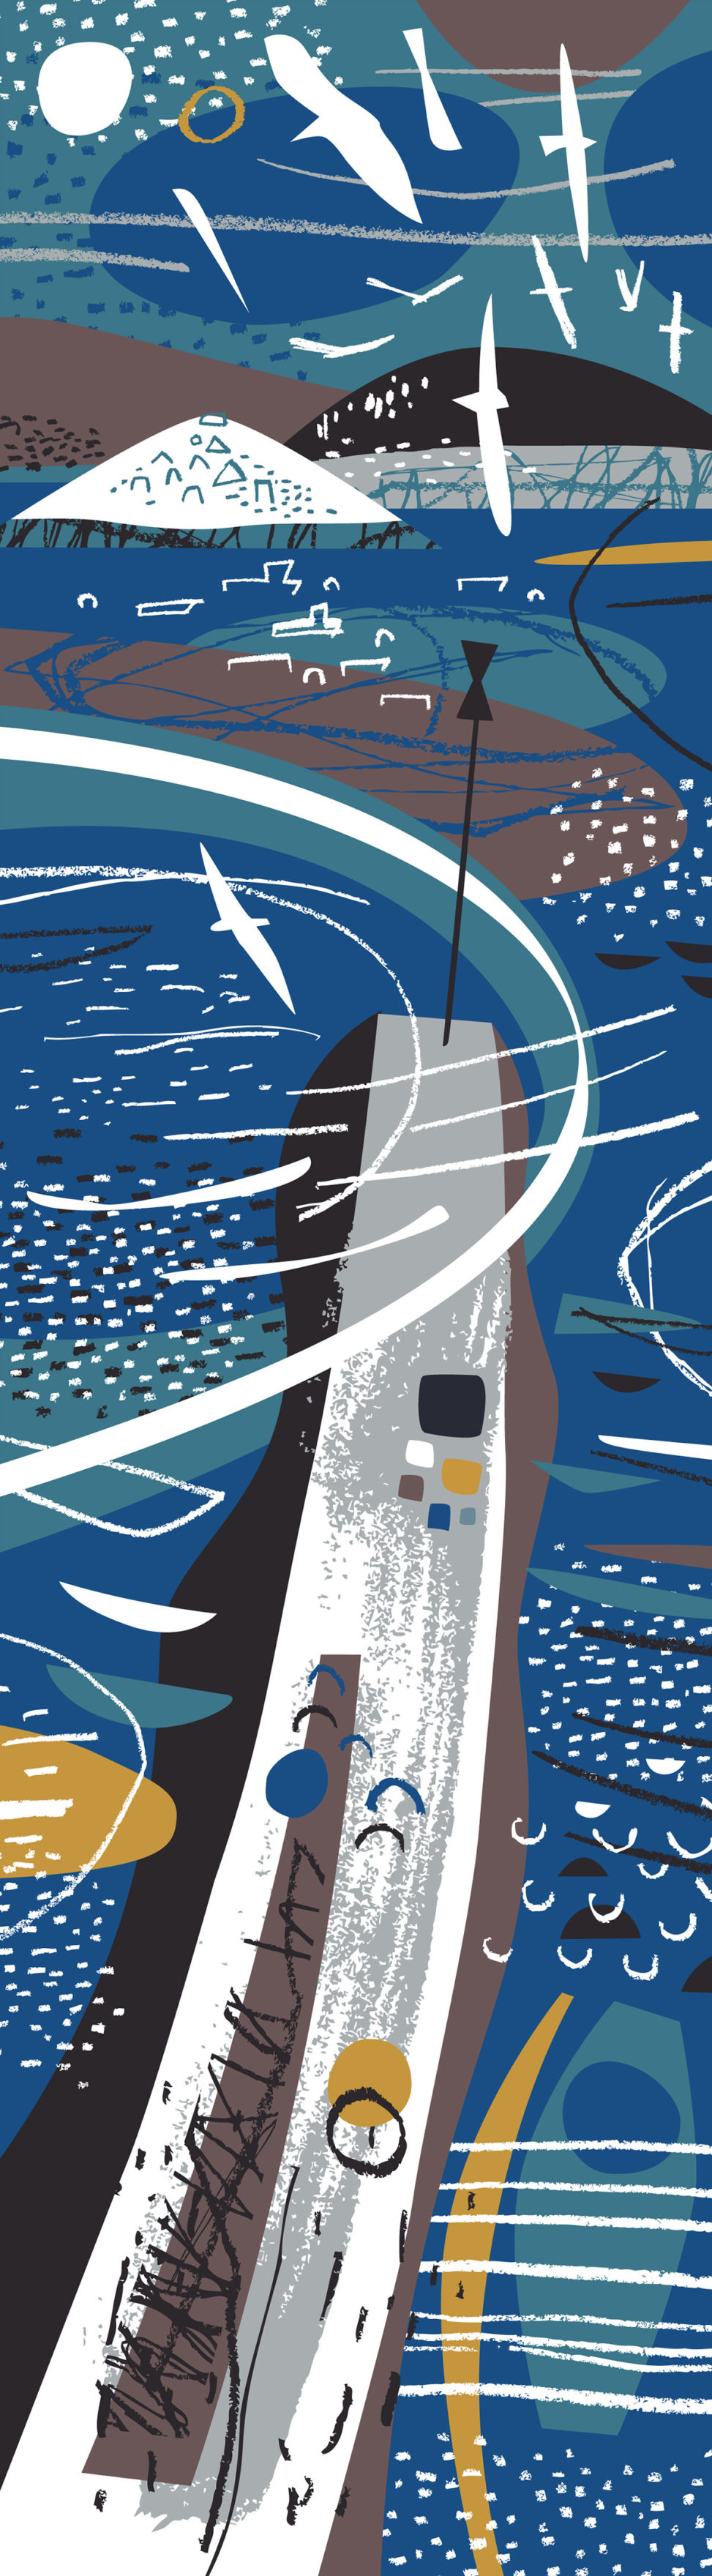 Lower Town Quay Scilly abstract scarf print by Matt Johnson